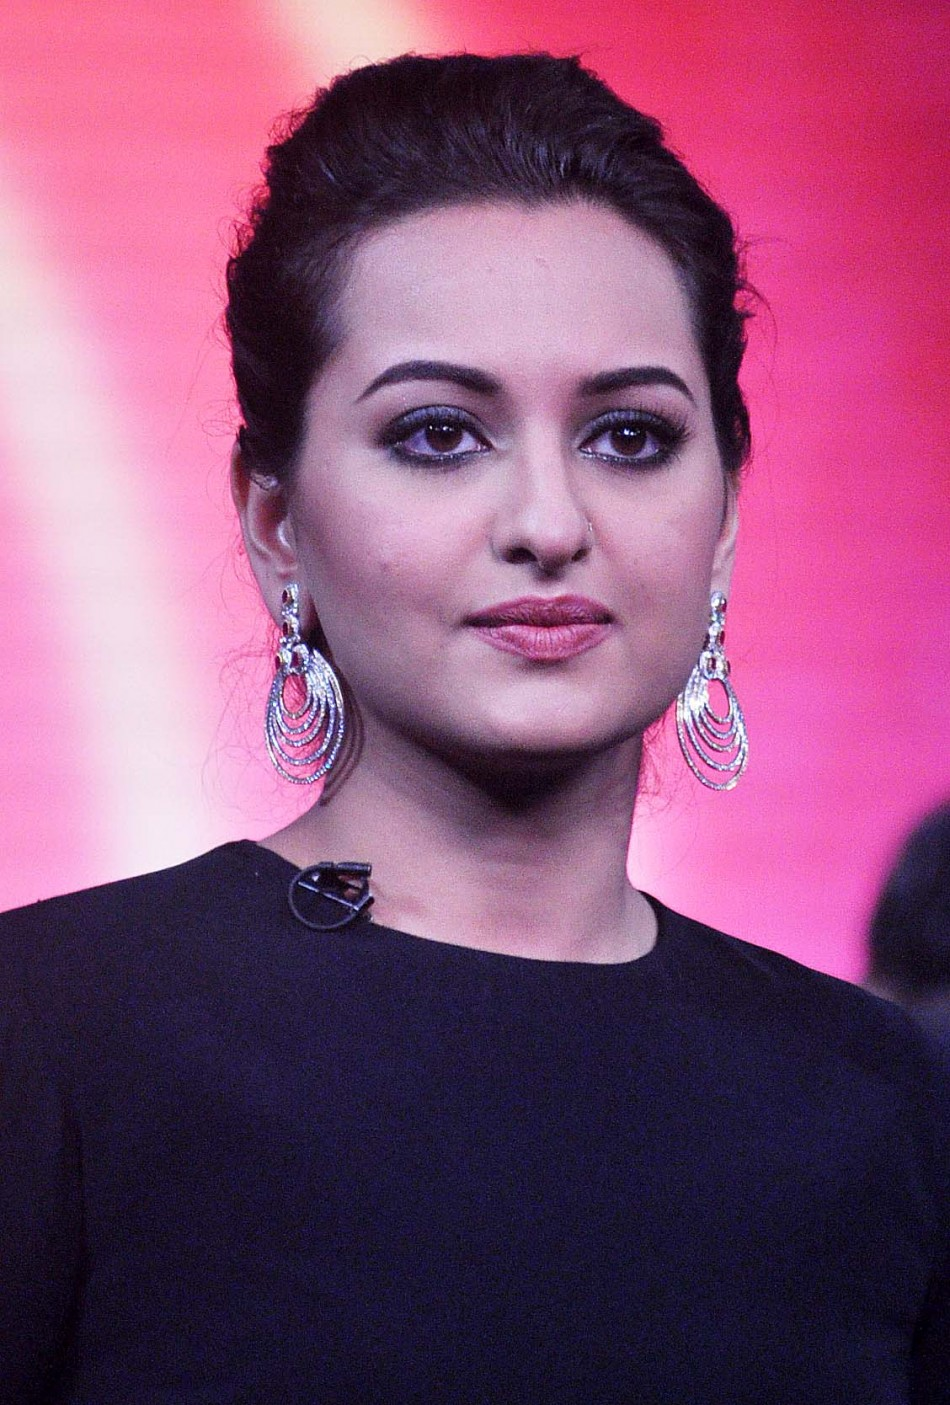 Sonakshi Sinha Hot & Sexy Photos - Bollywoodlifecom